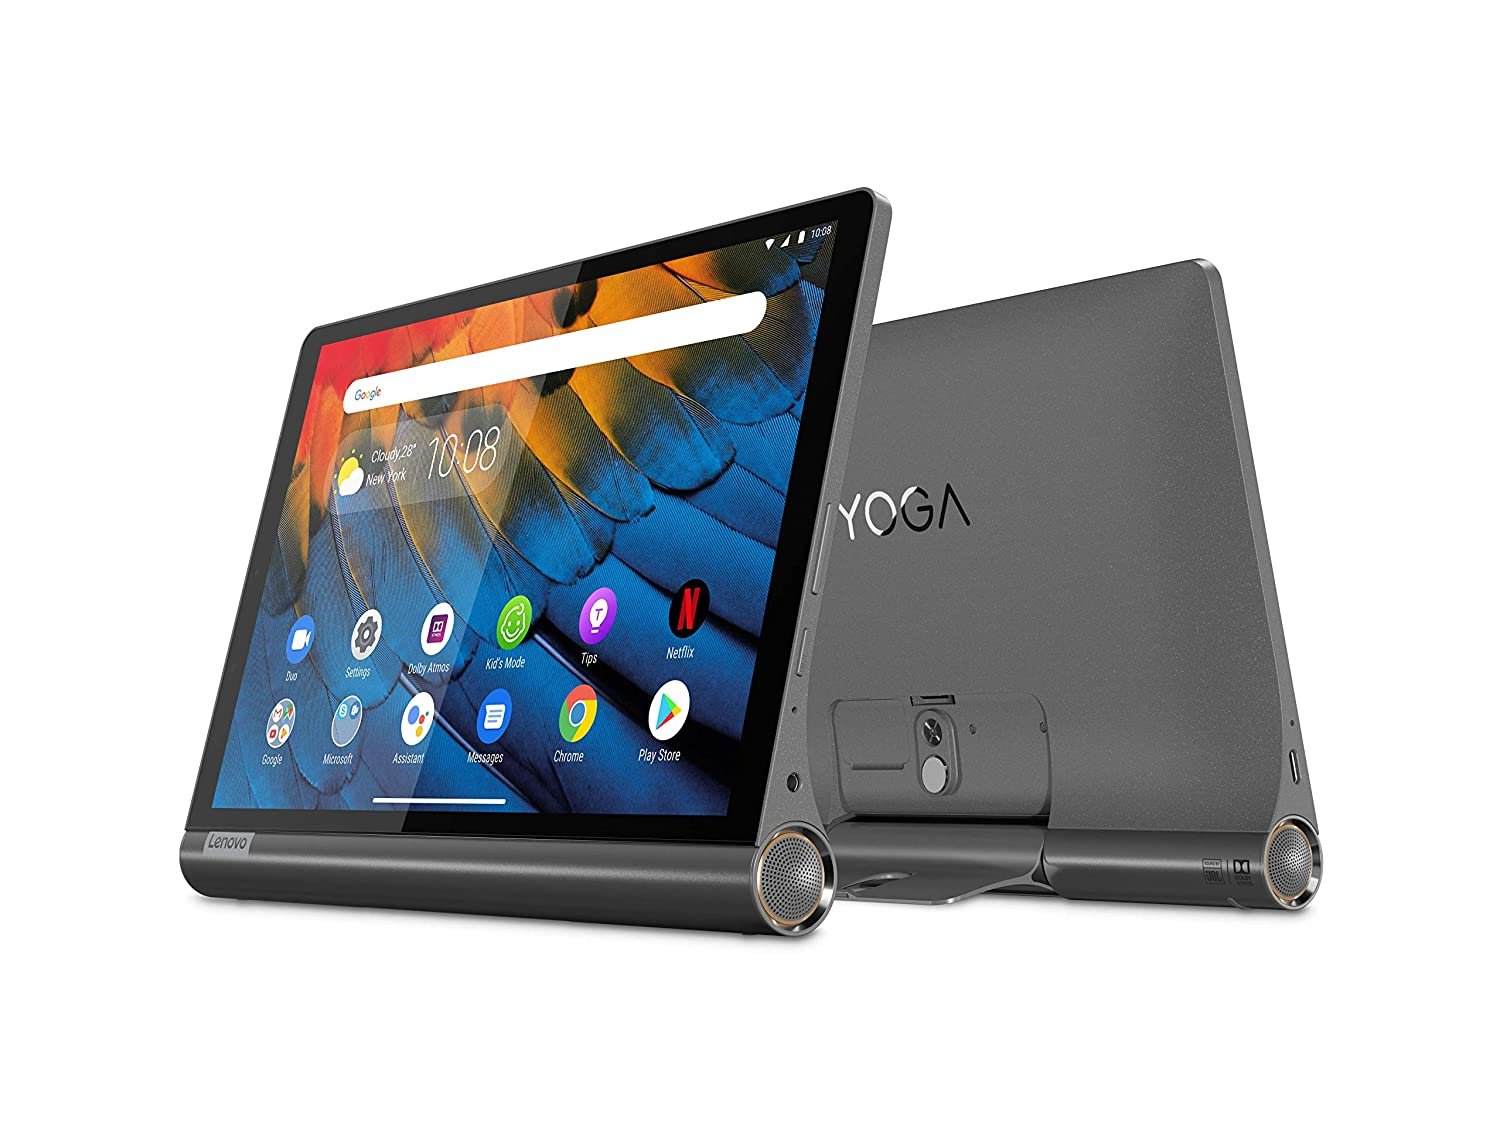 Buy NEW Lenovo Yoga Smart Tablet with The Google Assistant (10.1 inch, 4GB,  64GB, WiFi + 4G LTE), Iron Grey Online on Hilaptop.com